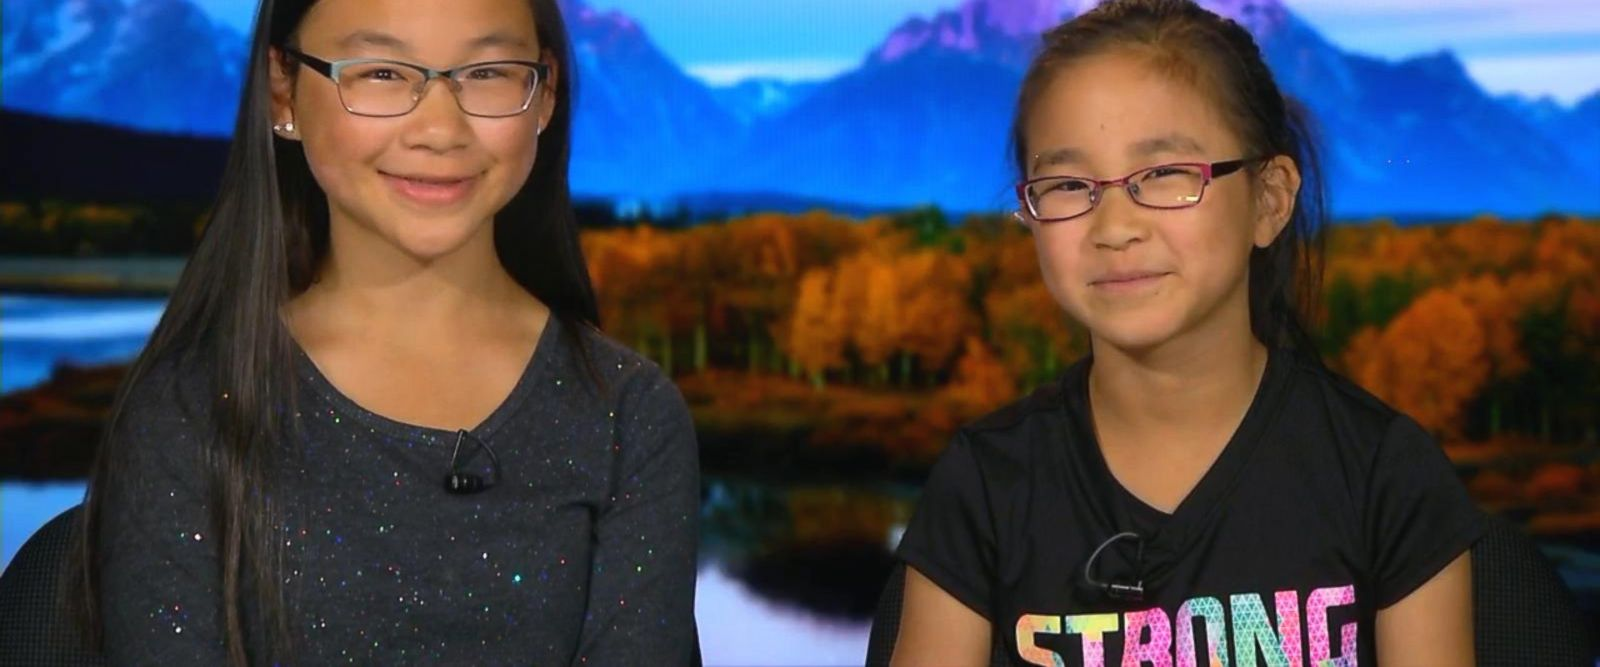 VIDEO: Sisters, aged 10 and 12, launch a solar eclipse project with NASA